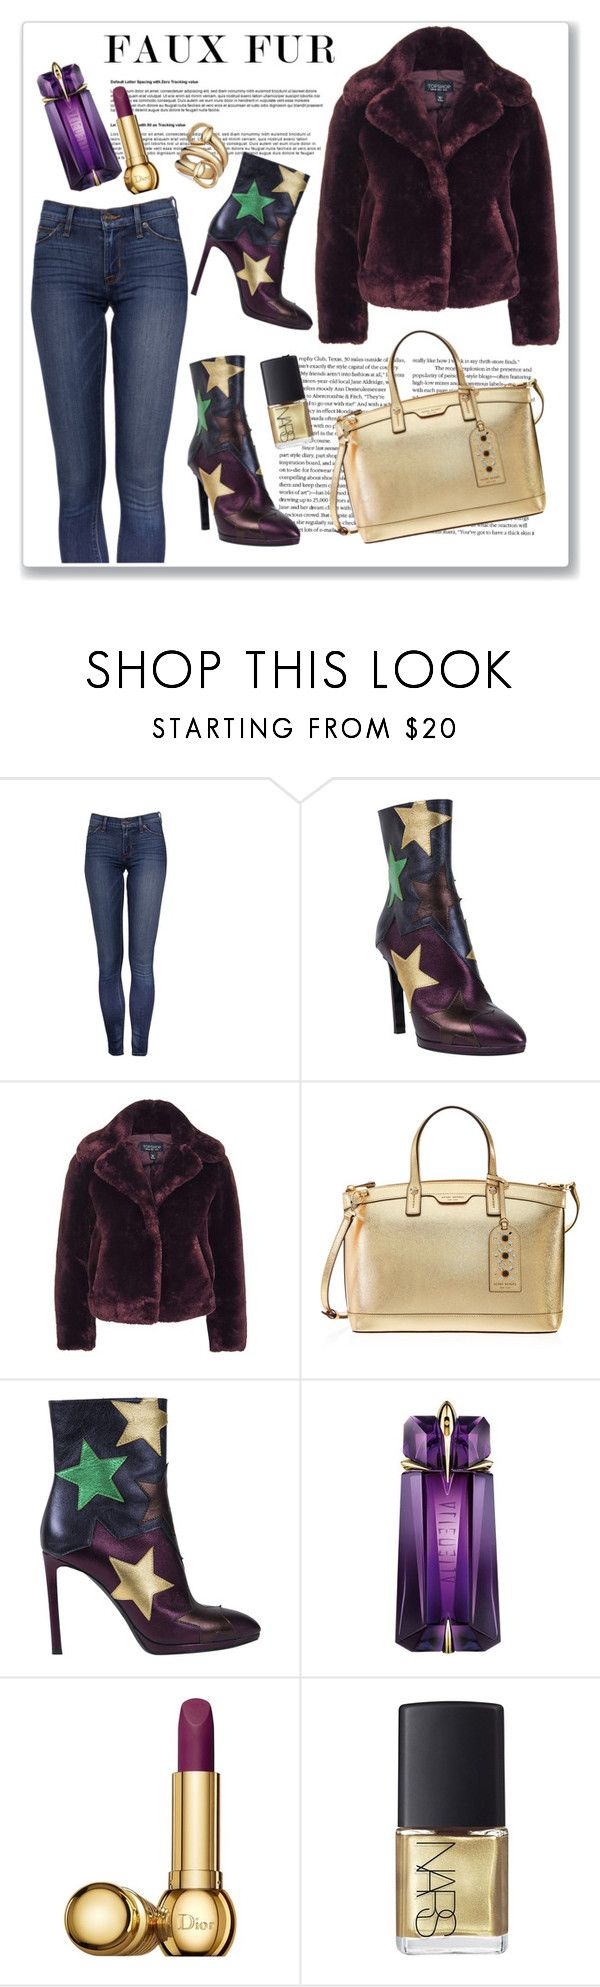 """""""Faux fur coat"""" by ruza-b-s ❤ liked on Polyvore featuring Roberto Cavalli, Topshop, Henri Bendel, Thierry Mugler, Christian Dior, NARS Cosmetics, Gucci and fauxfurcoats"""